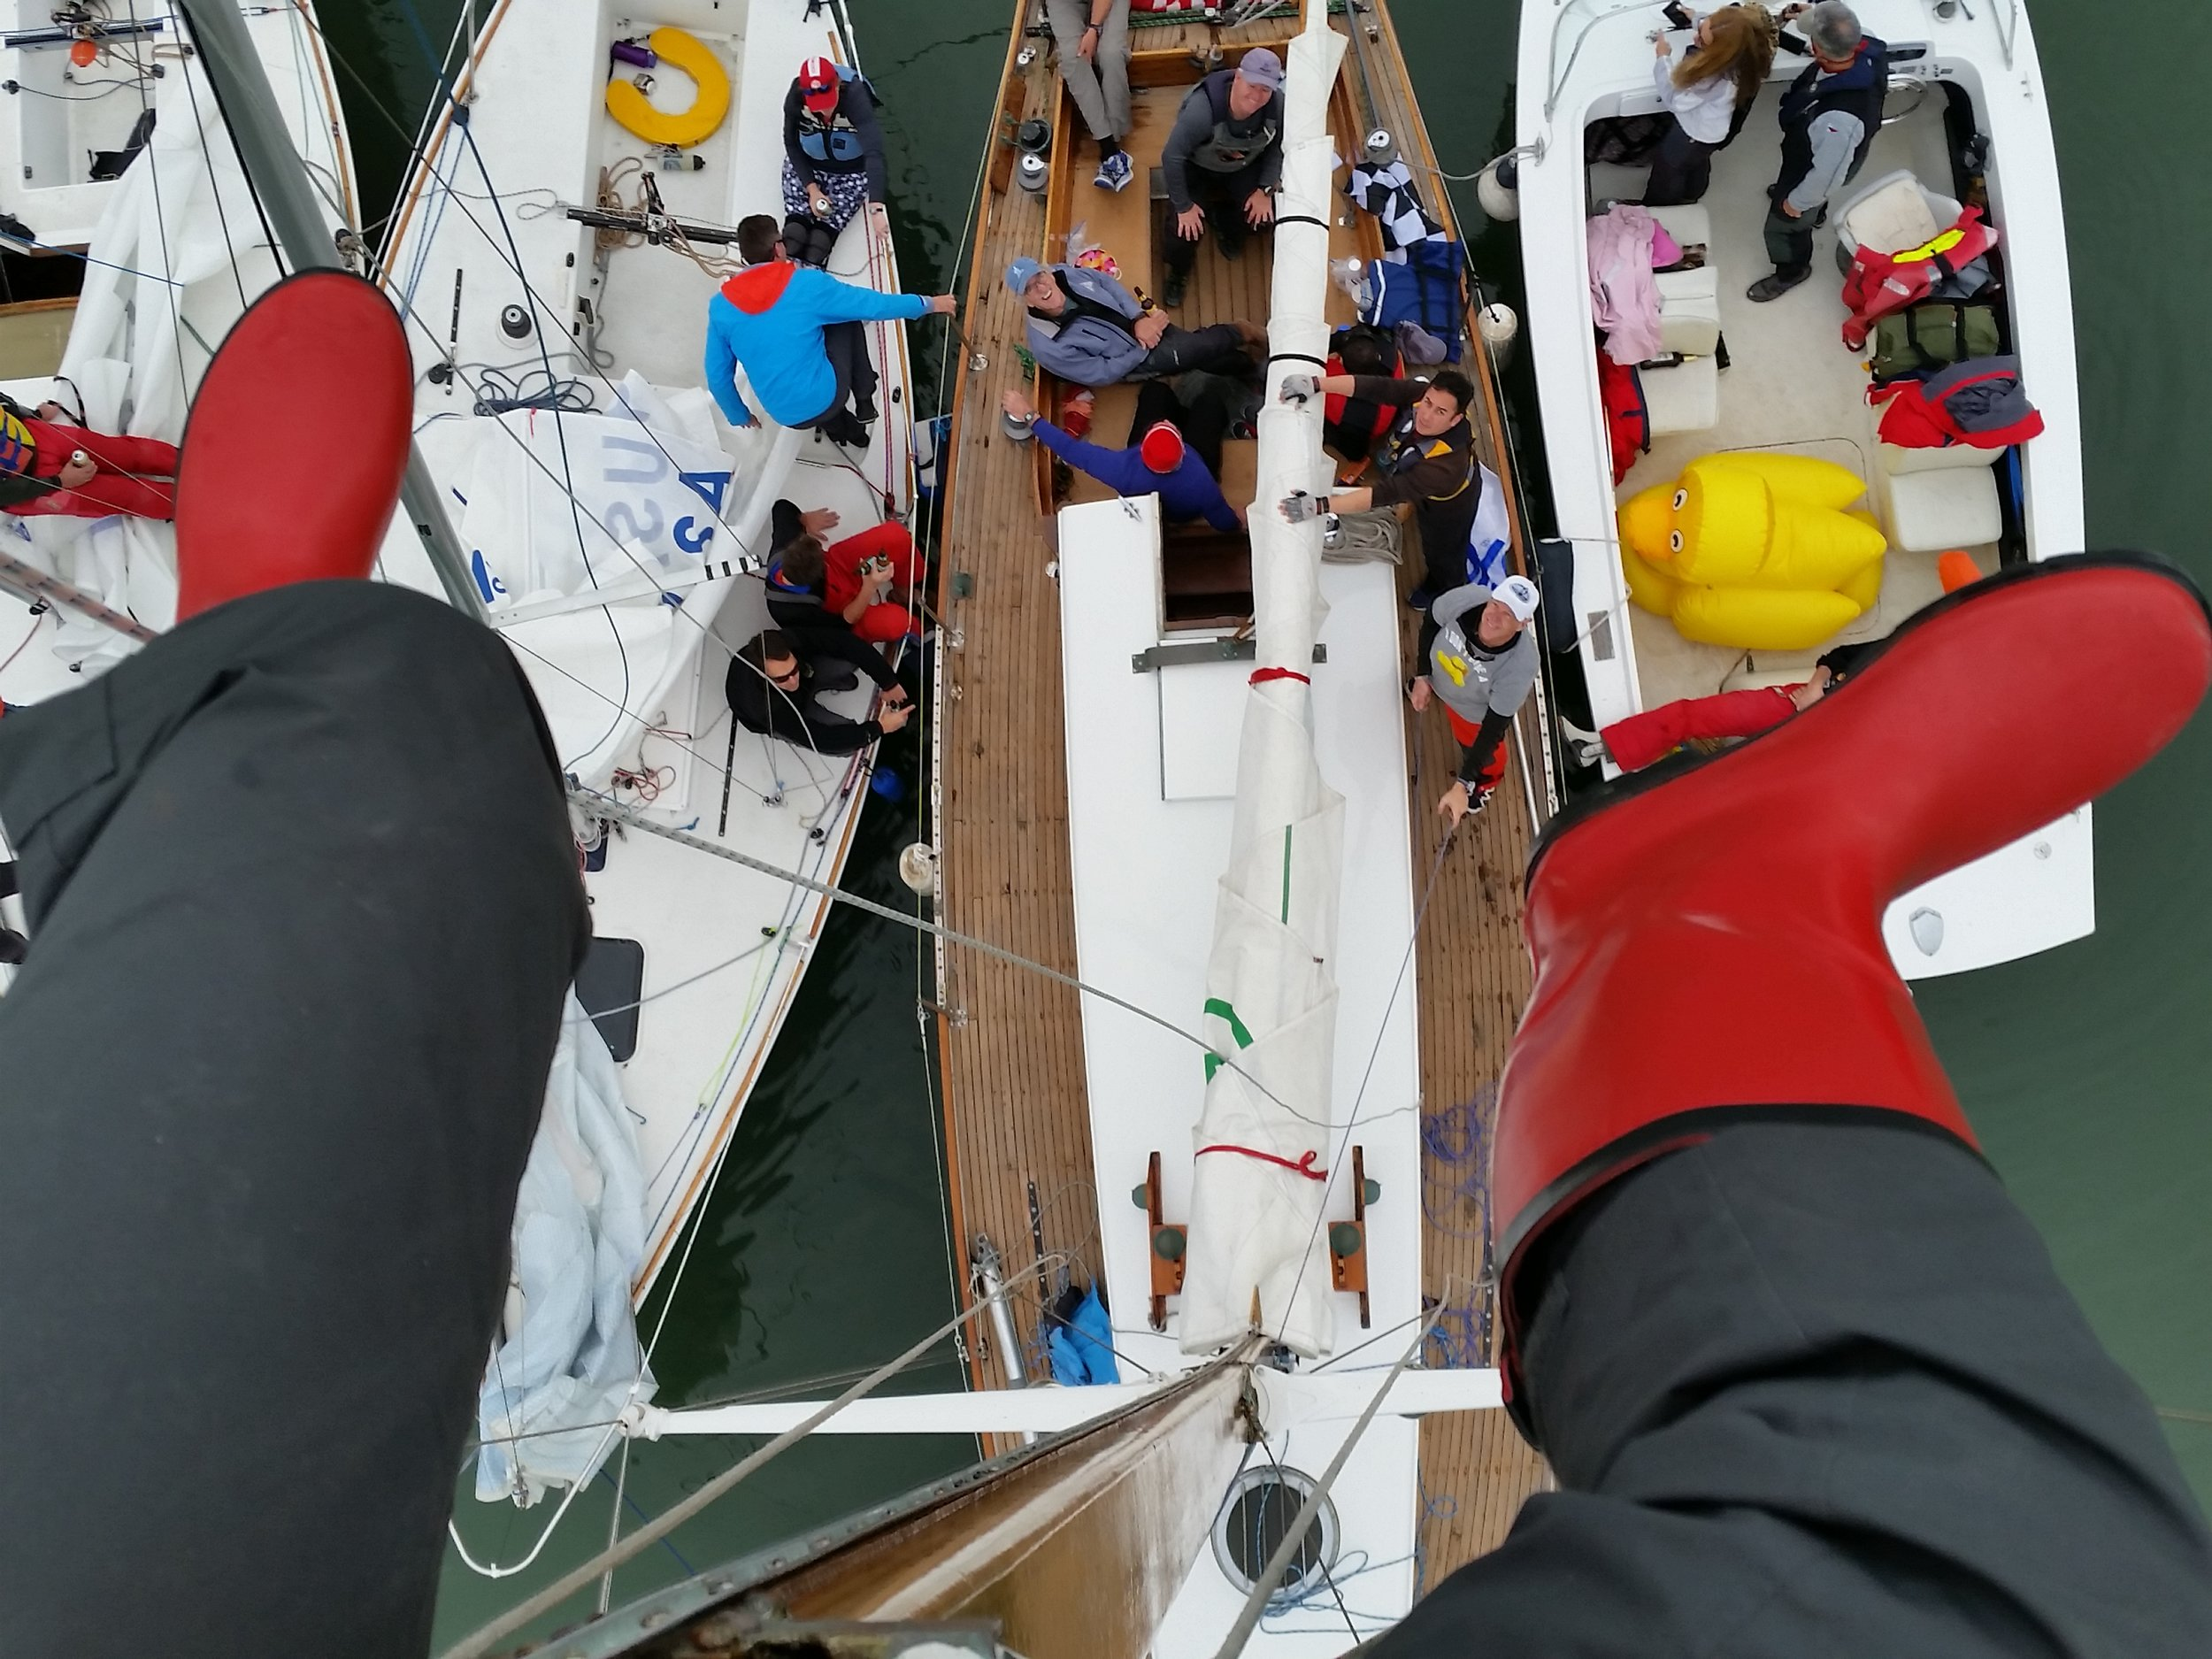 Every now and then things slow down long enough to scale a mast and grab new point of view. With silly red costume boots, up I go on the Clipper Farallon after he annual Crew You J/24 and small boats regatta.